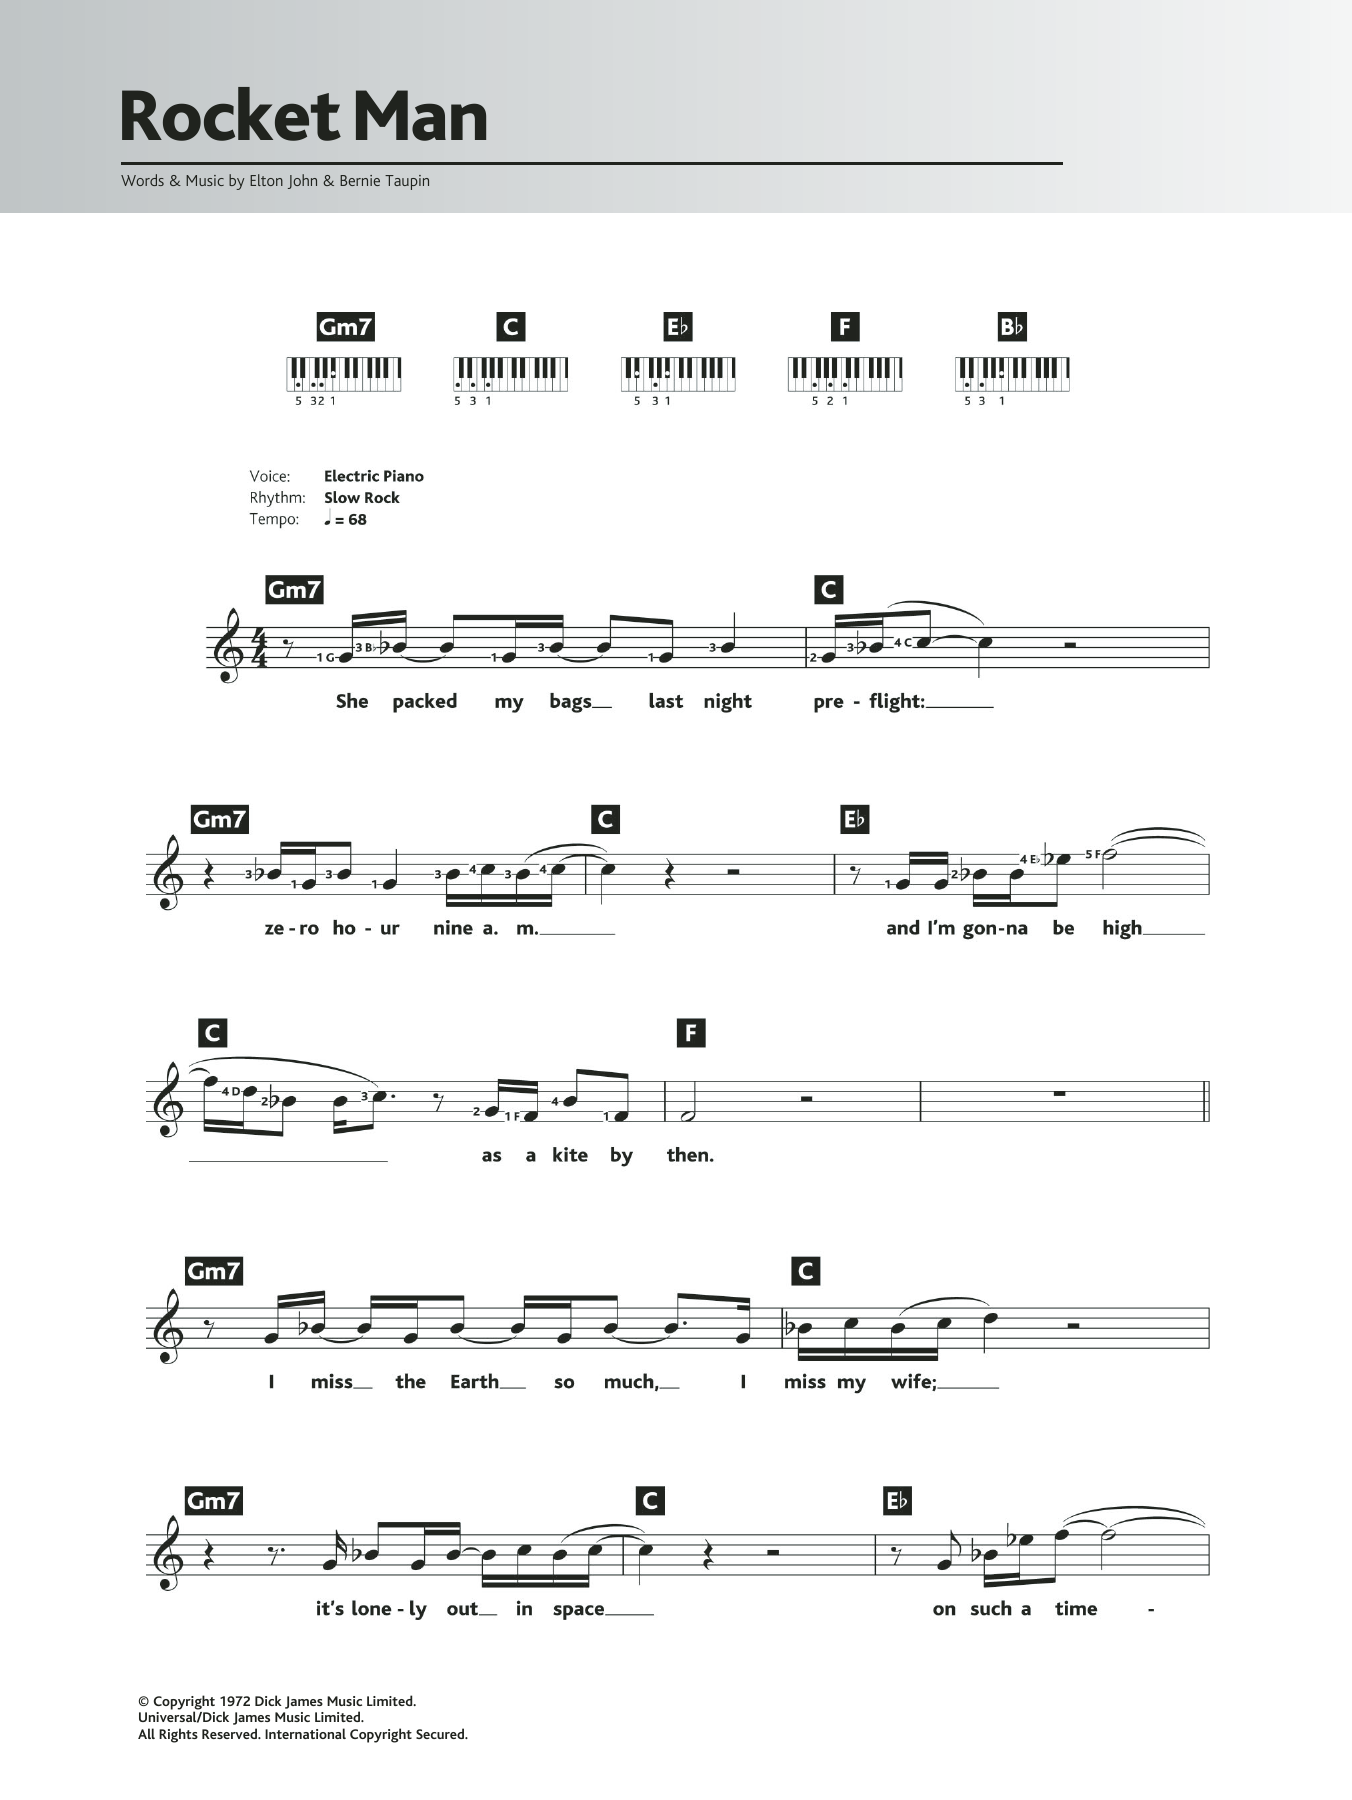 Sheet music digital files to print licensed bernie taupin sheet music digital files to print licensed bernie taupin digital sheet music hexwebz Choice Image